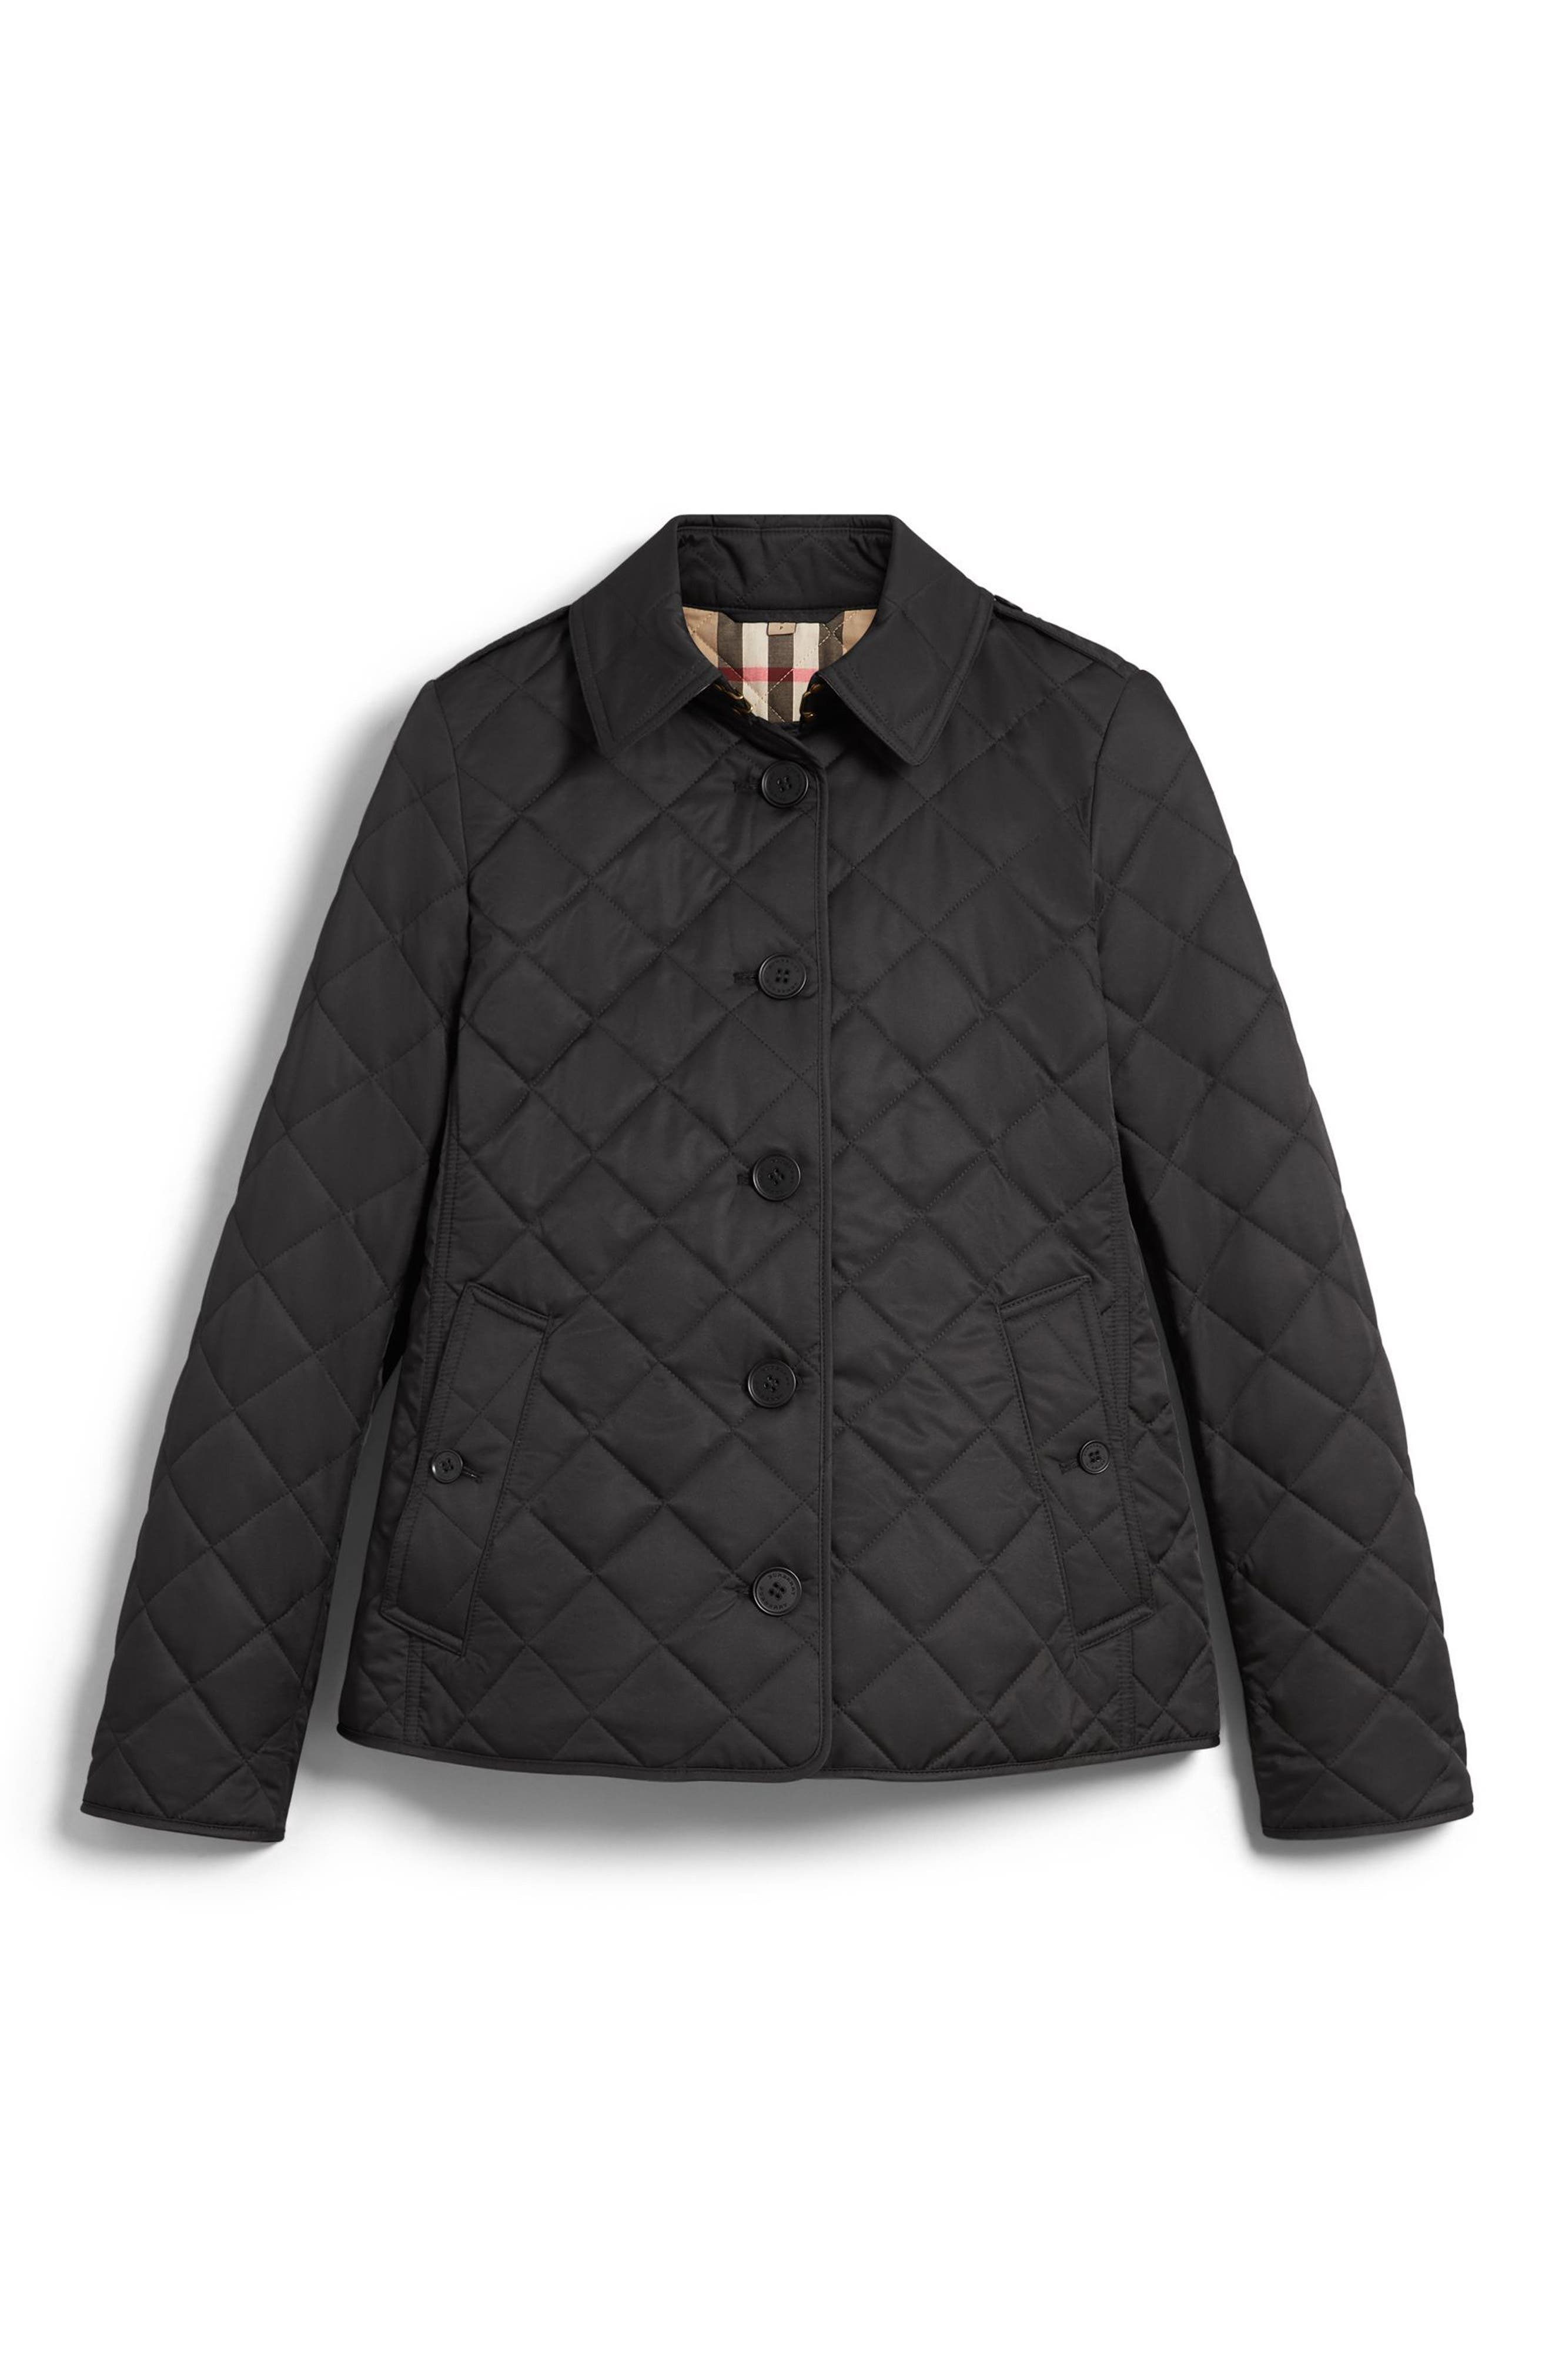 Frankby Quilted Jacket,                             Alternate thumbnail 5, color,                             001